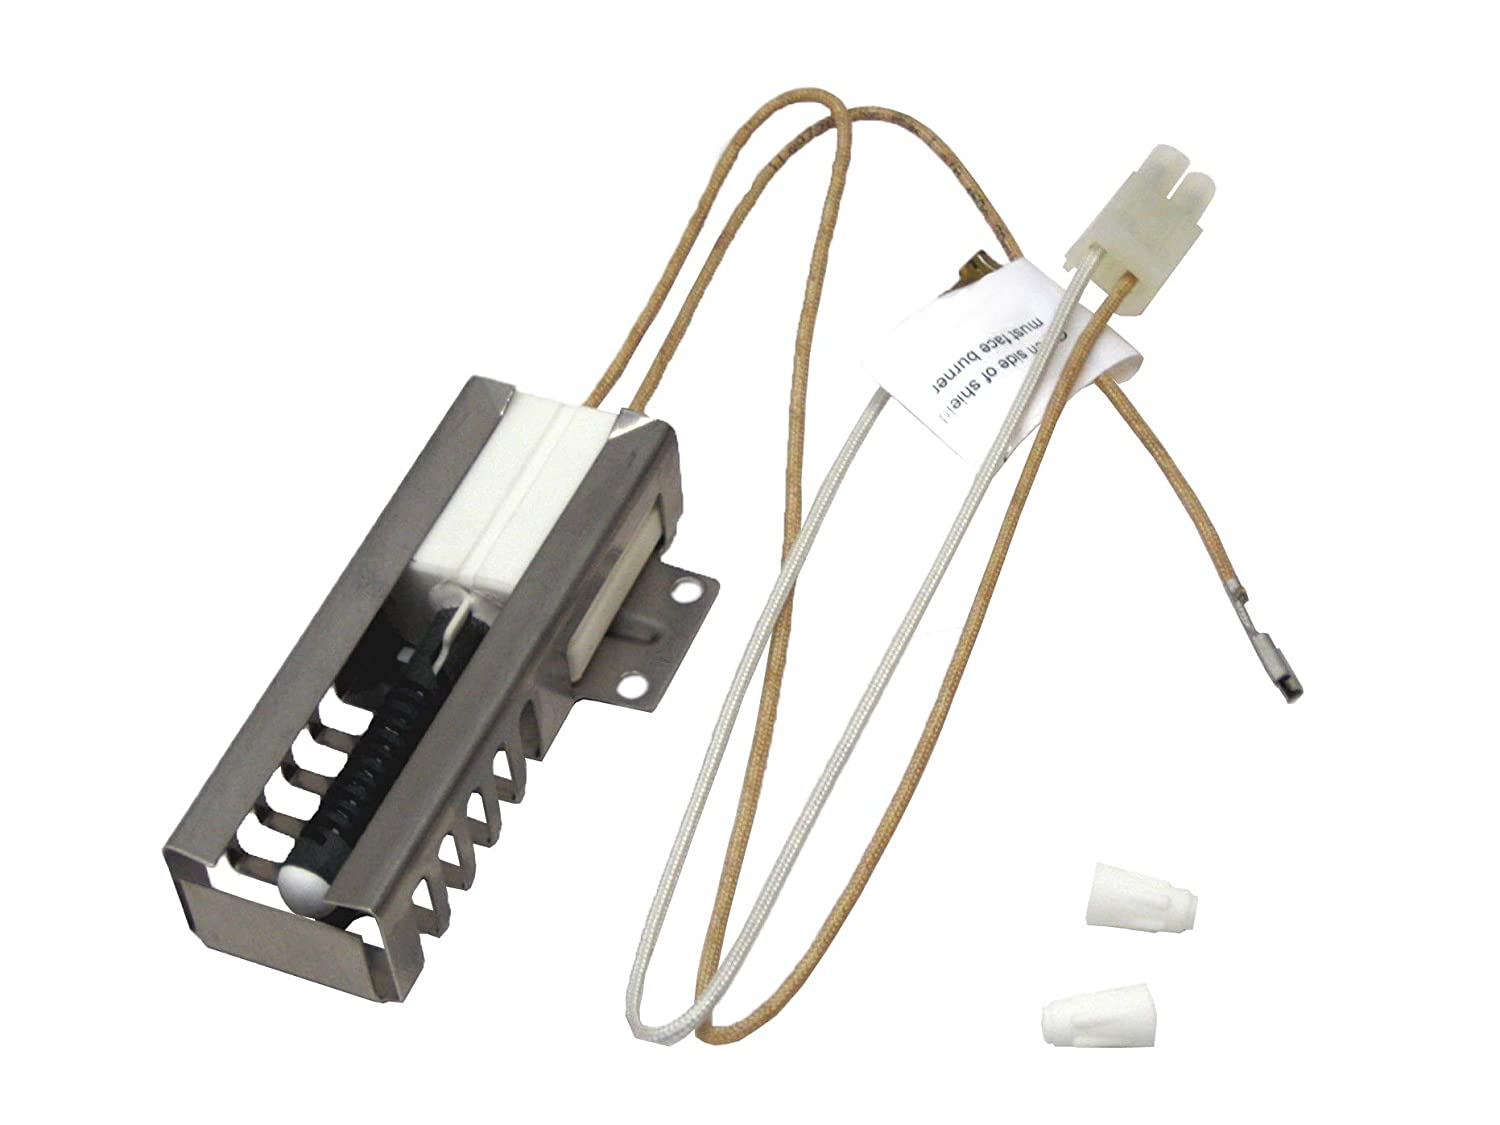 NR026 - General Electric Drop-in Replacement Oven Ignitor Igniter